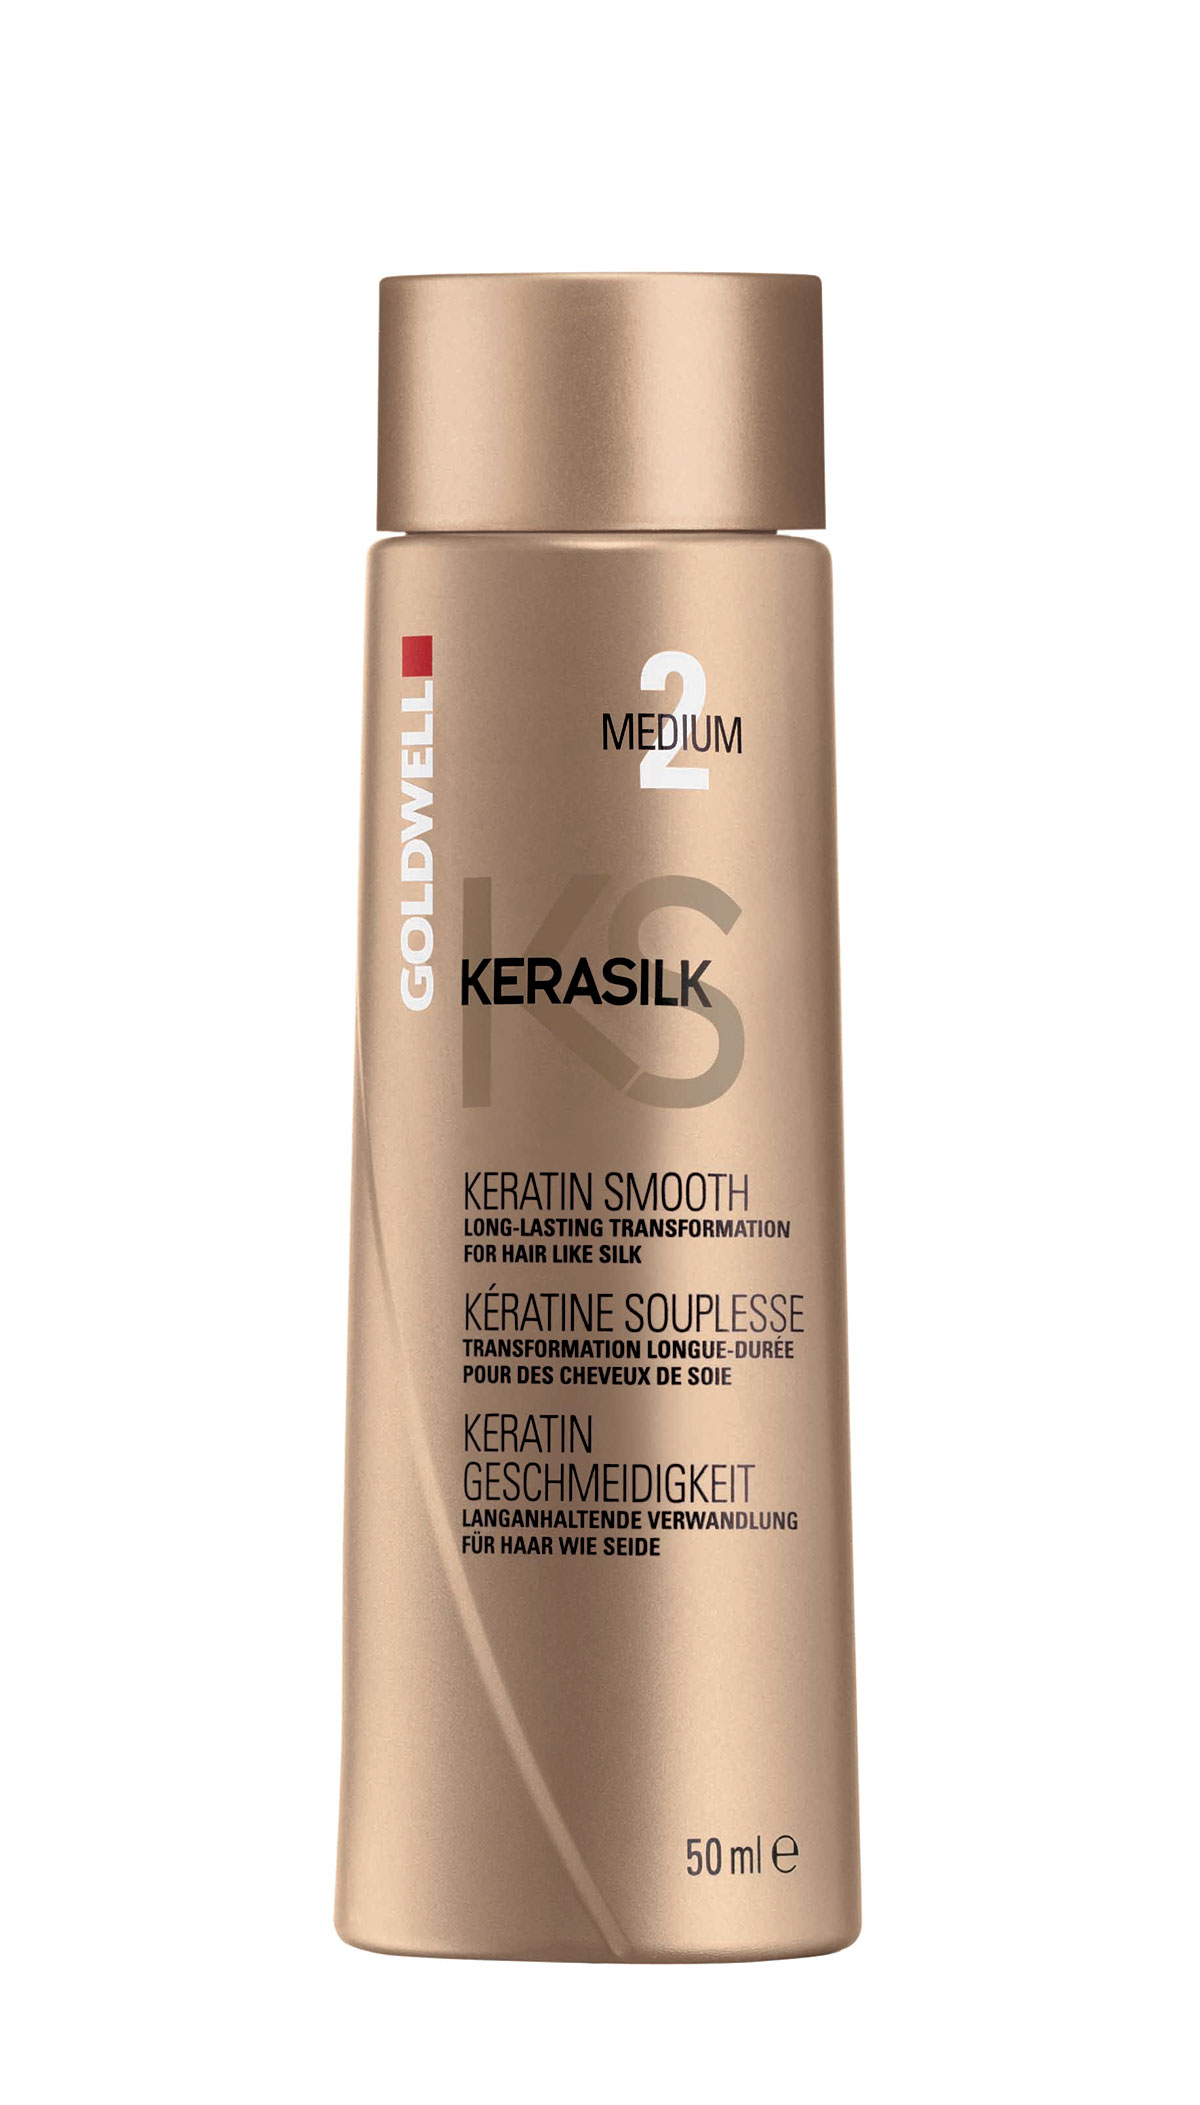 The Latest Keratin Products And Treatments For Smoothing And